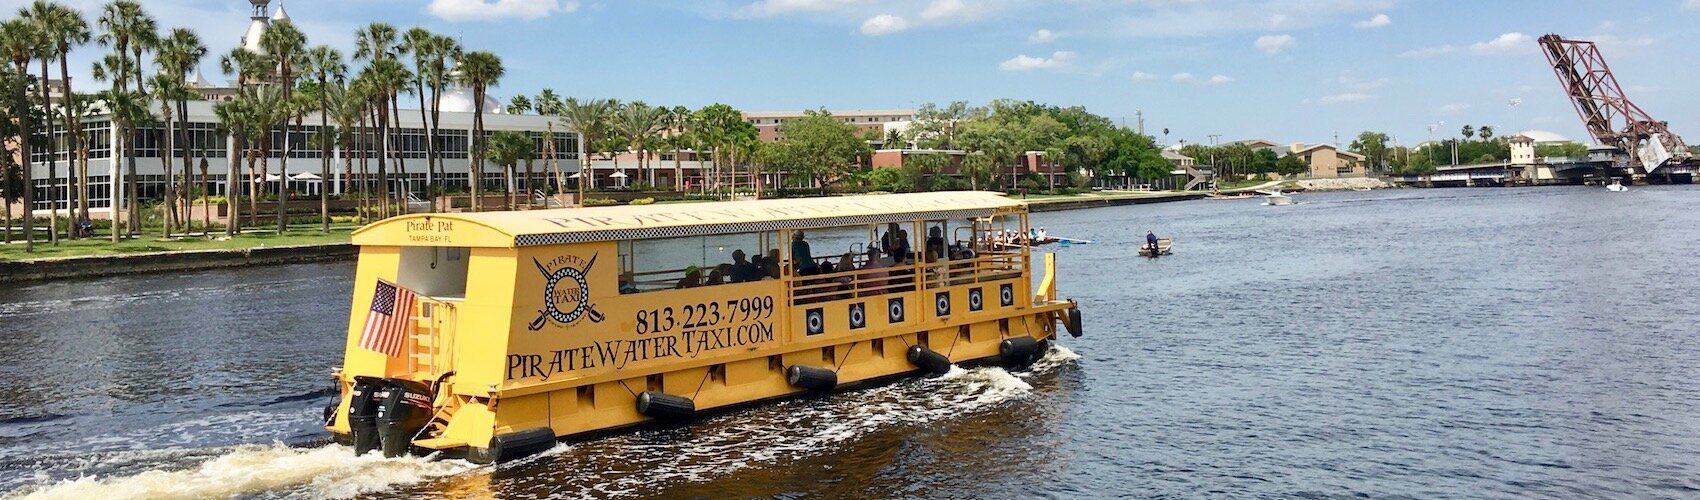 Pirate Taxi makes 15 stops along Tampa Riverwalk in the Channel District, Harbour Island, and Davis Islands.